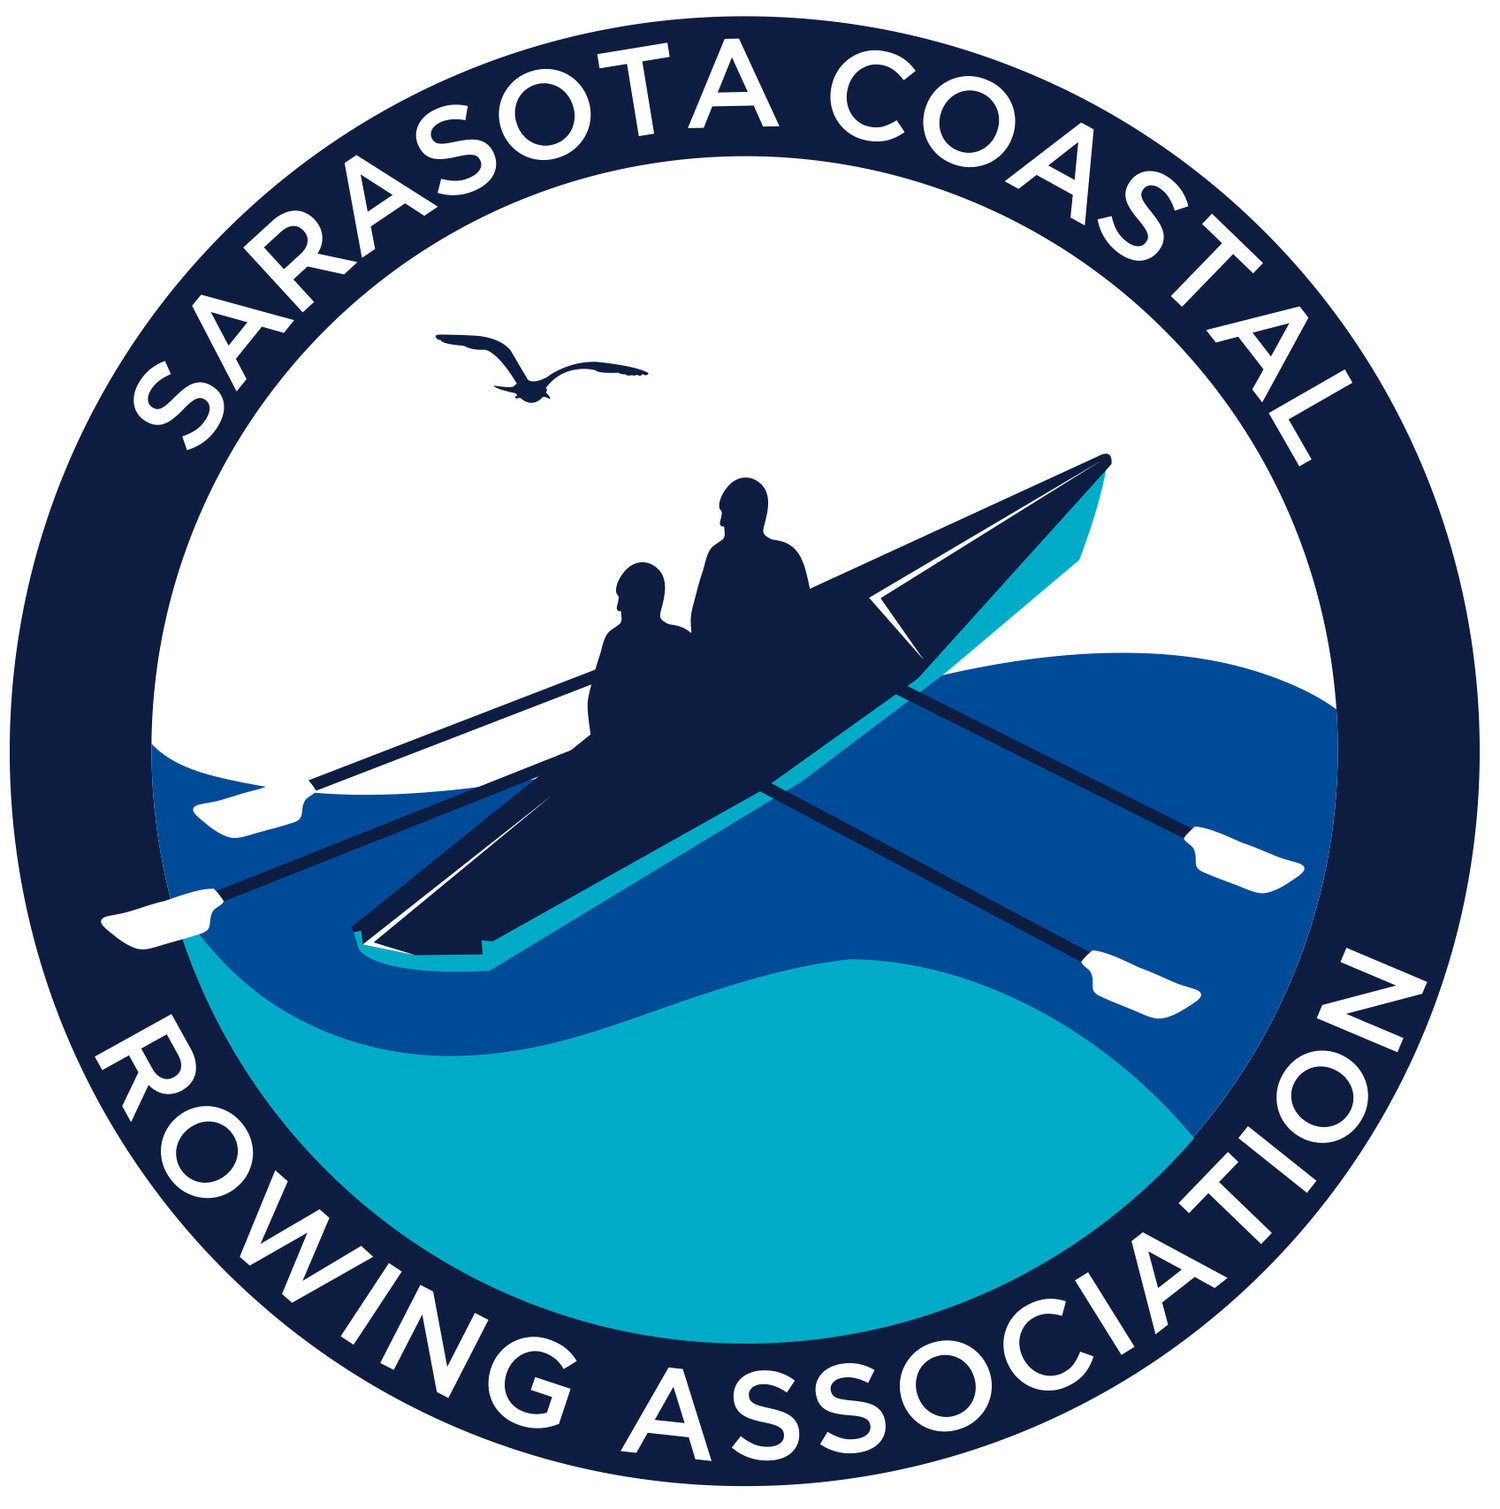 Sarasota Coastal Rowing Association